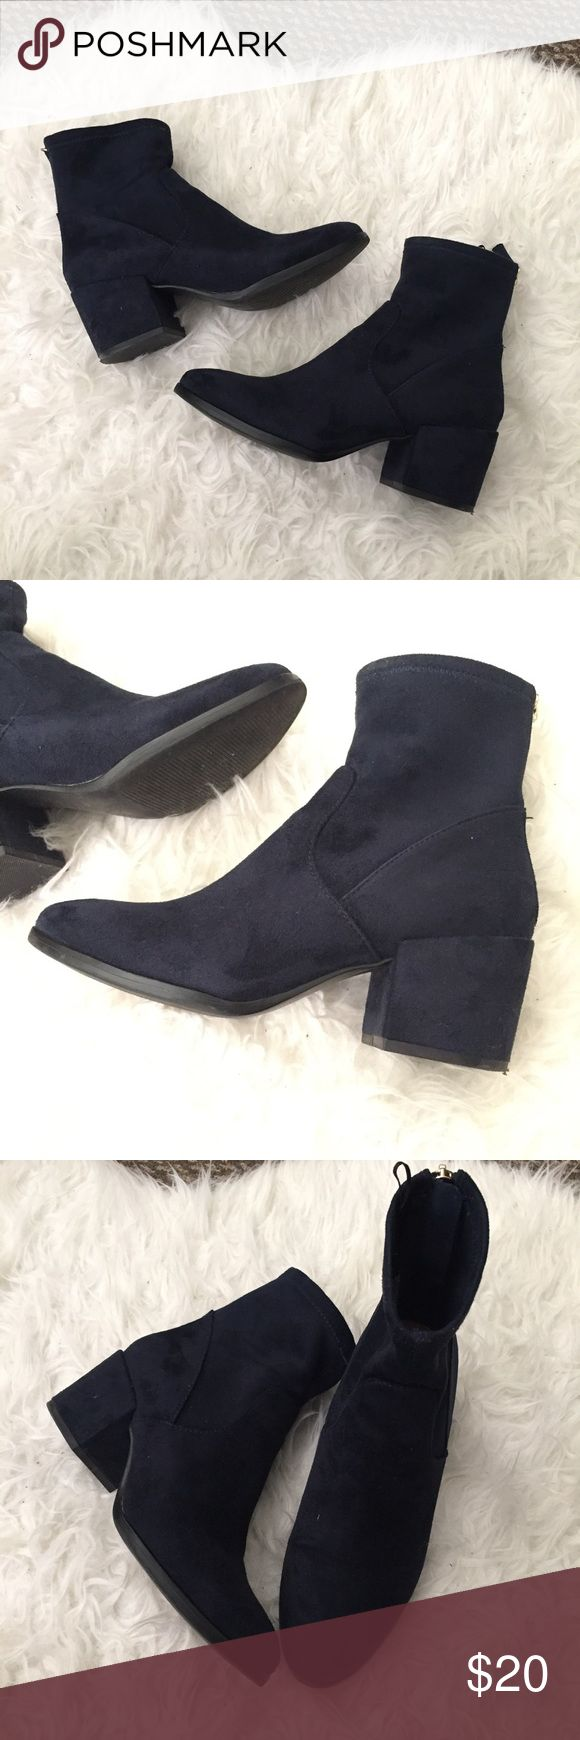 Midnight Blue Sock Fitted Ankle Booties size 37 worn once, super cute!! Excellent condition. It says Eur 37 US 6, but I'm a 7 and I fit it just fine H&M Shoes Ankle Boots & Booties